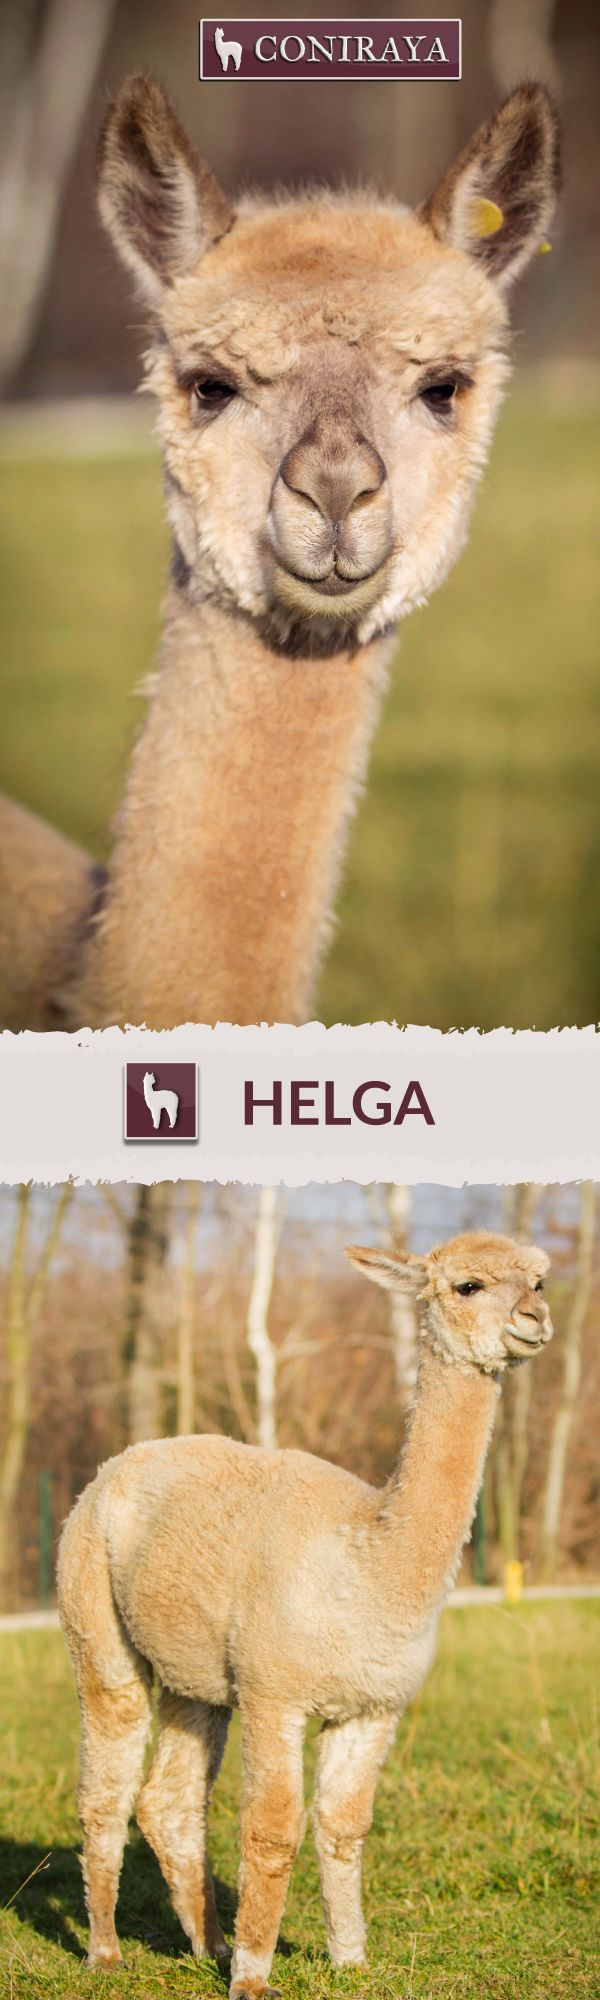 Meet one of our sweet Coniraya alpaca girls - Helga . She was born in 2009. Her fiber is in color : FAWN. For more informations check her profile on our website.